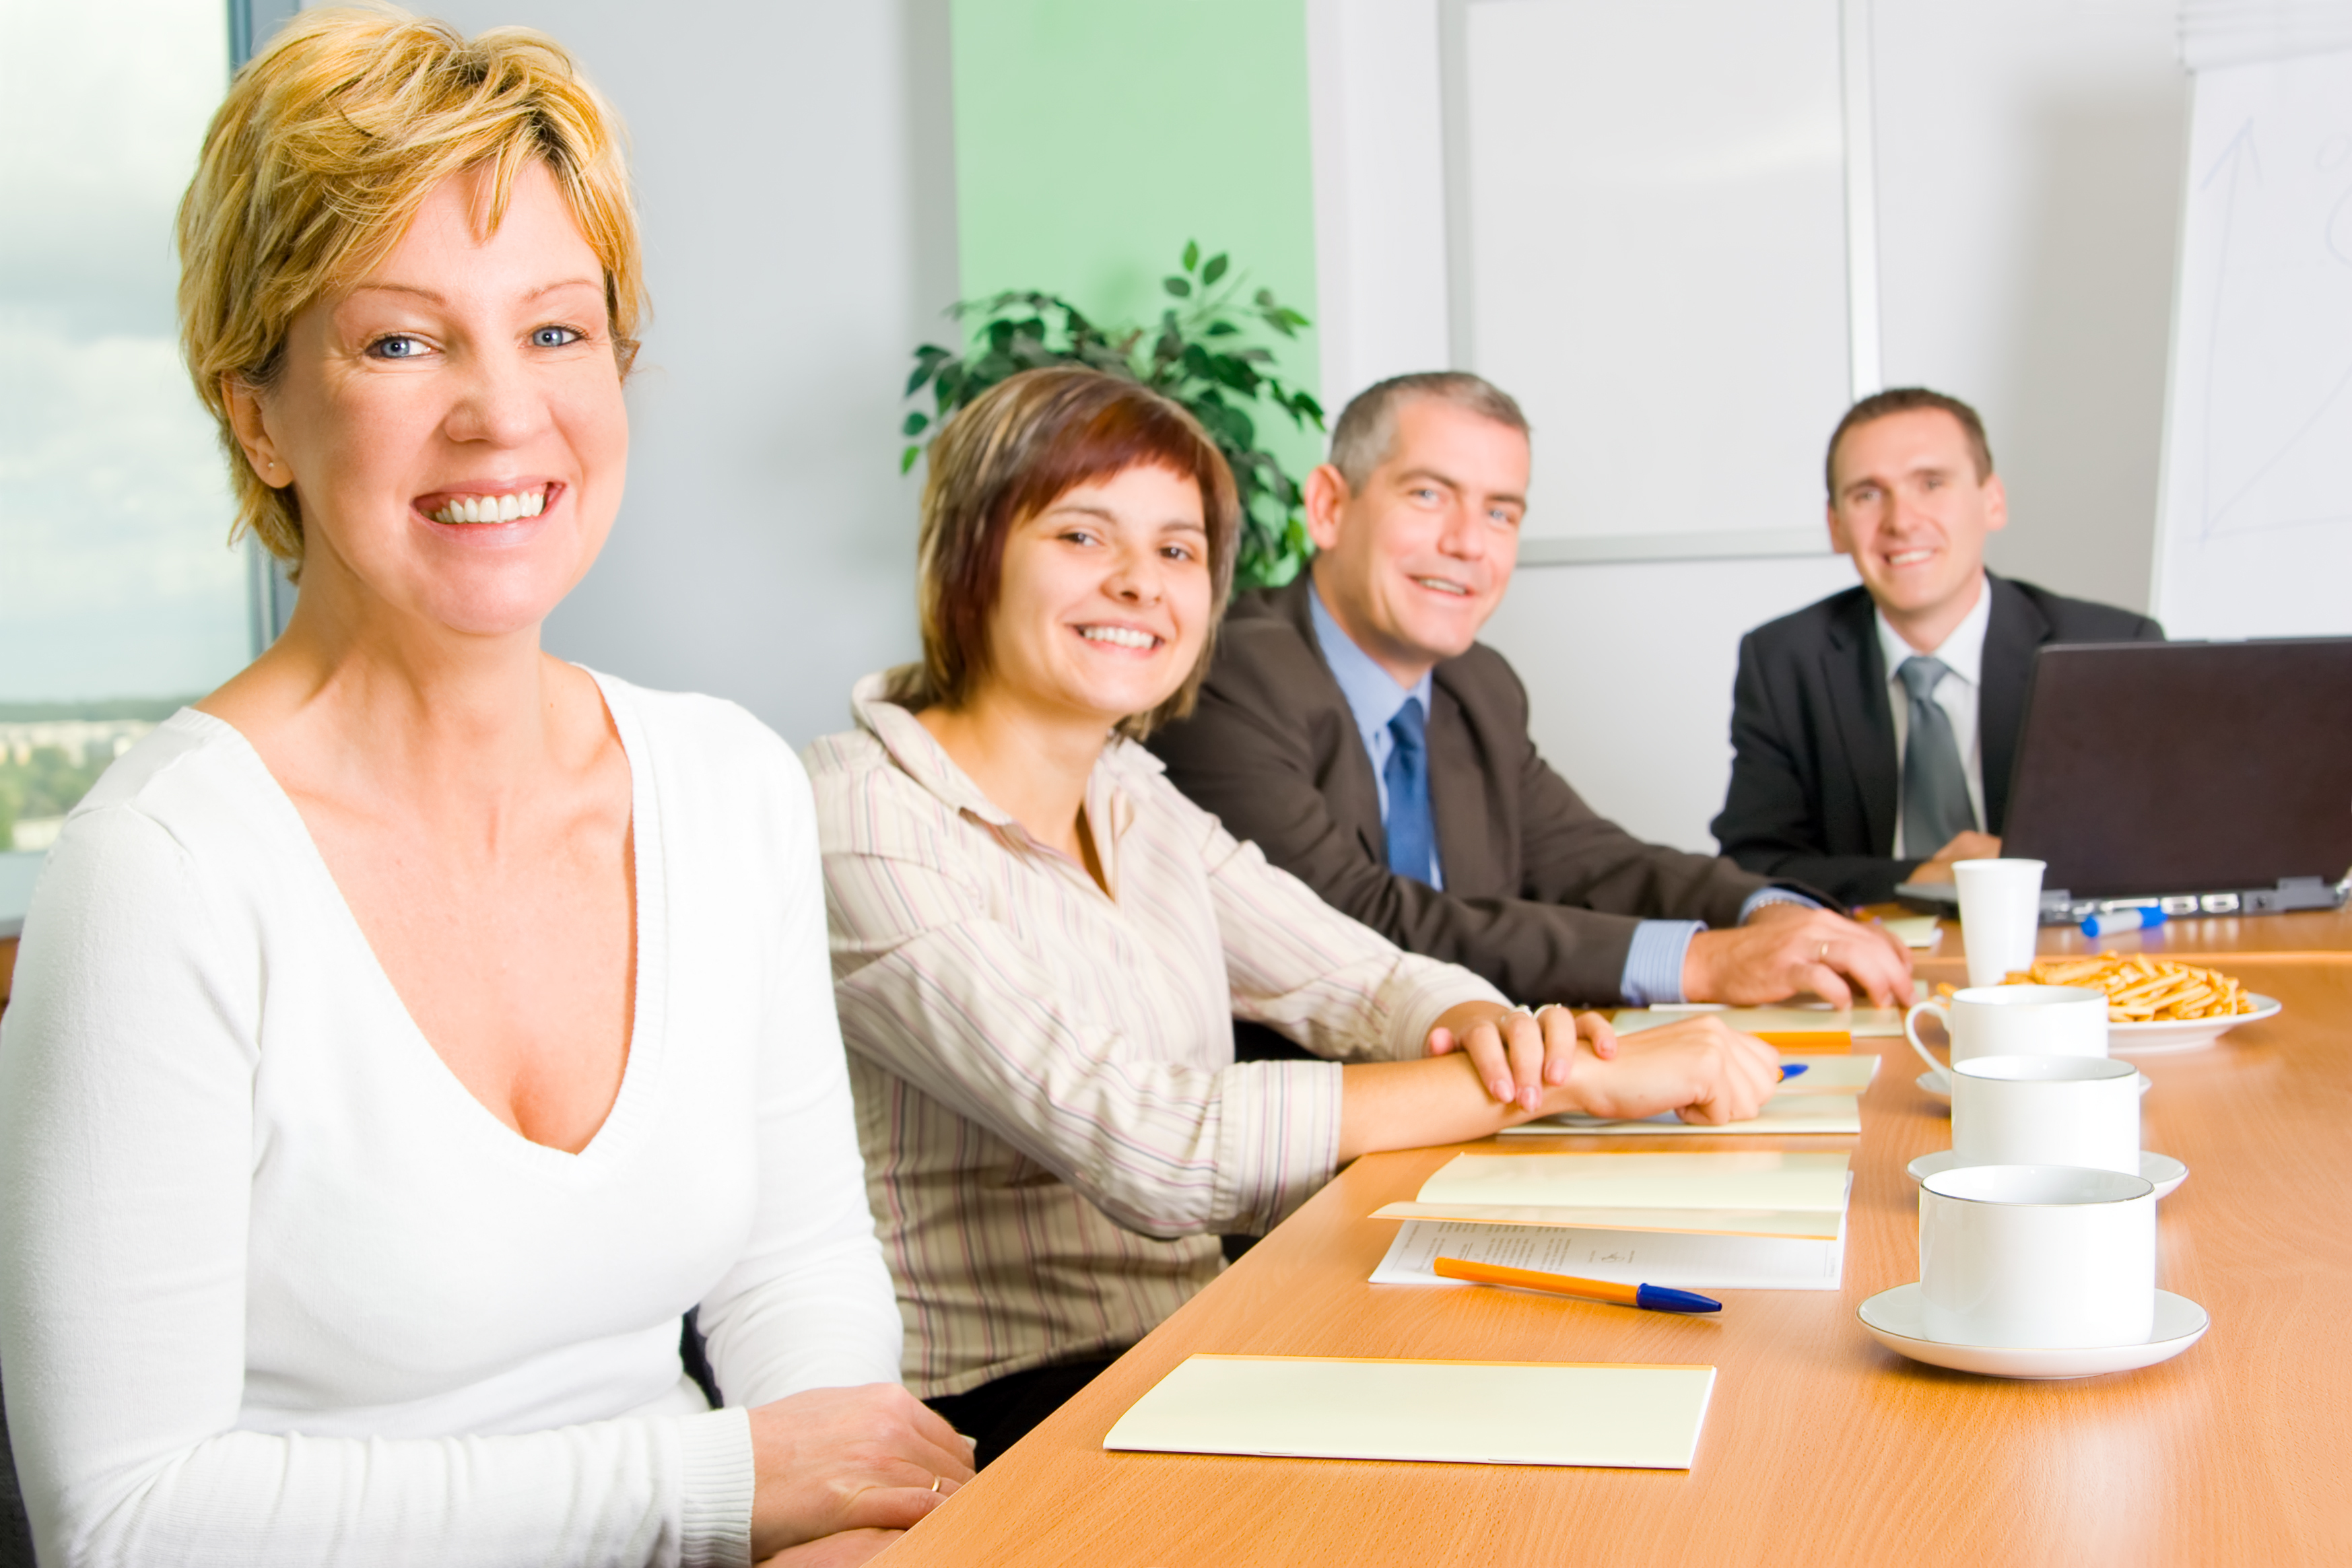 HOA Meetings are for More Than Board Members